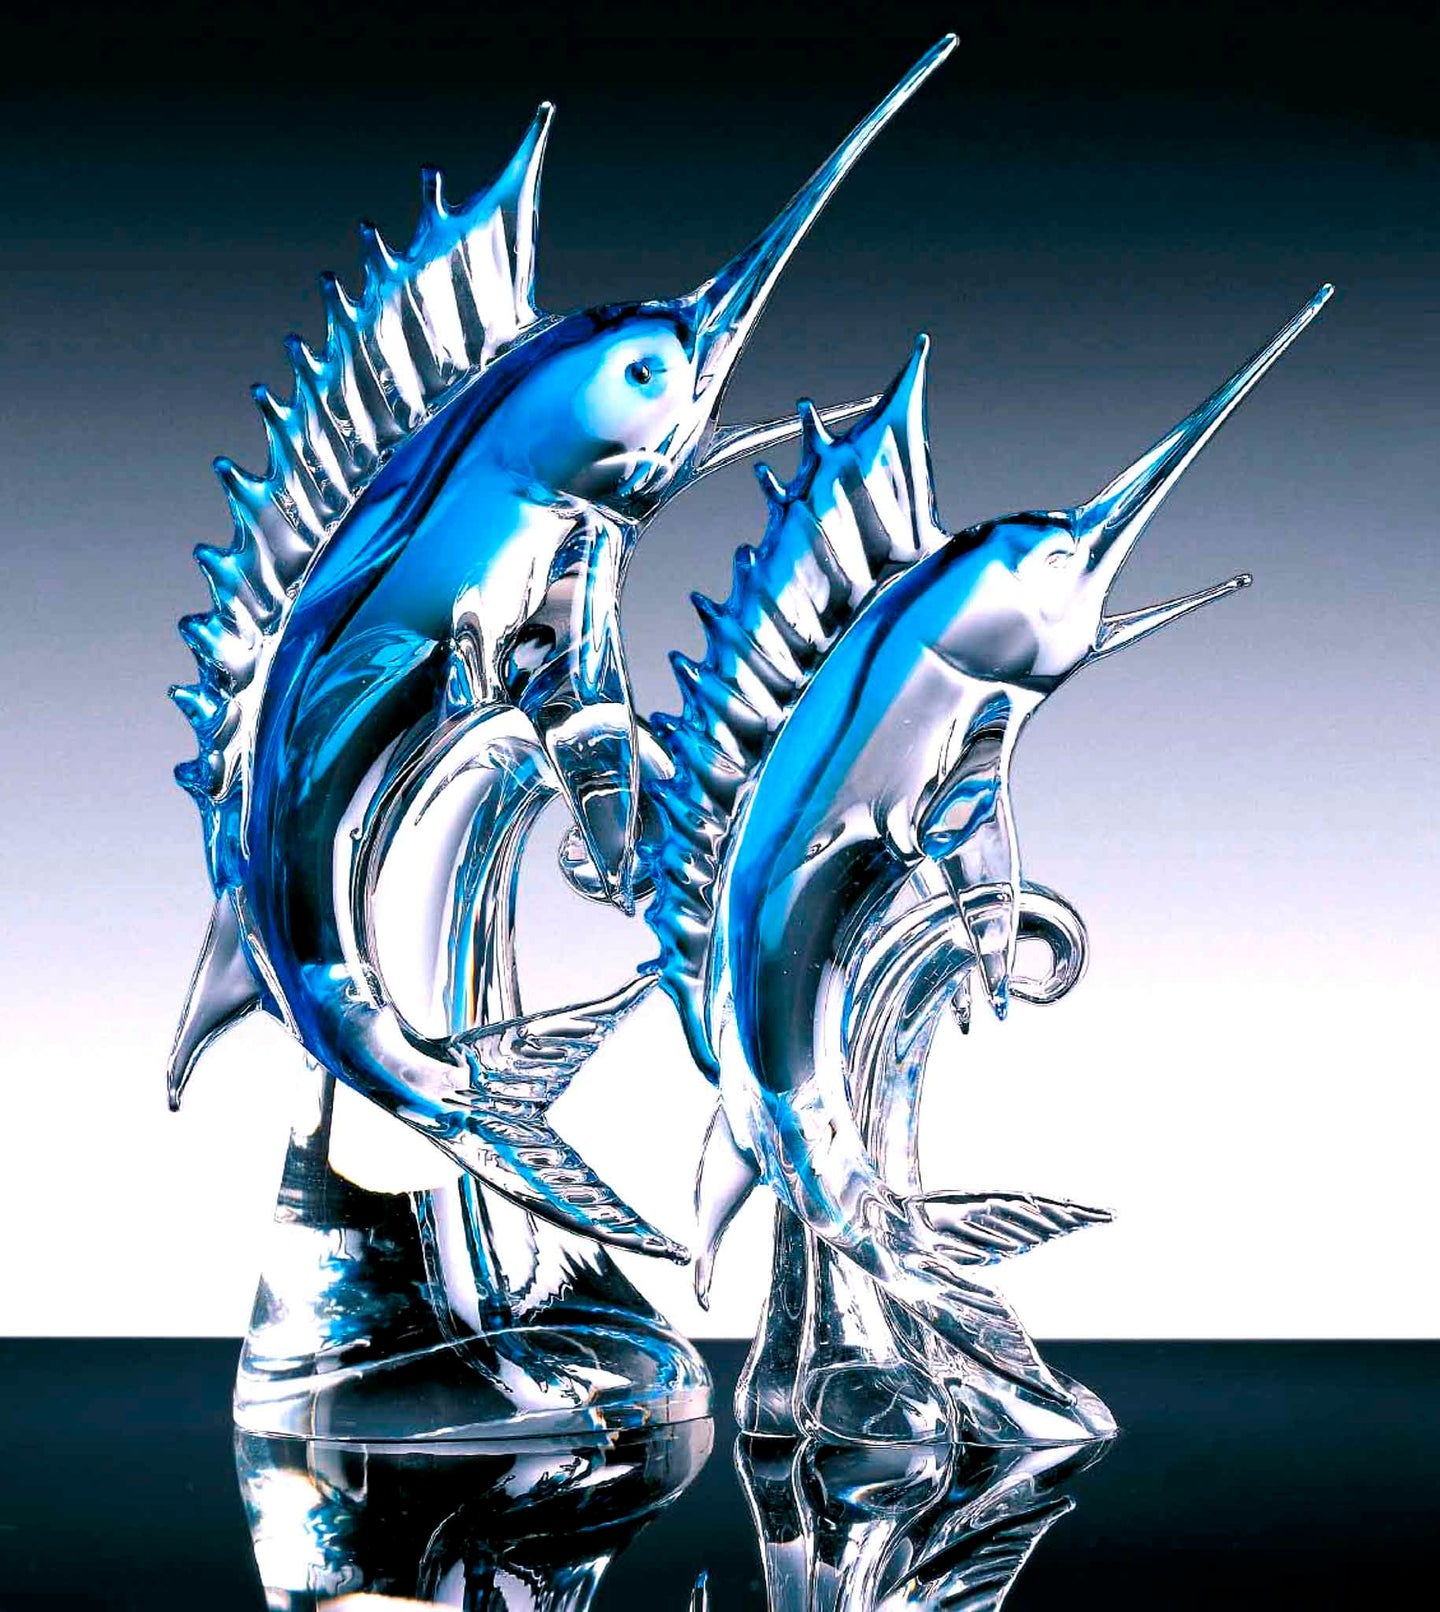 BLUE MARLIN Murano Glass Sculpture